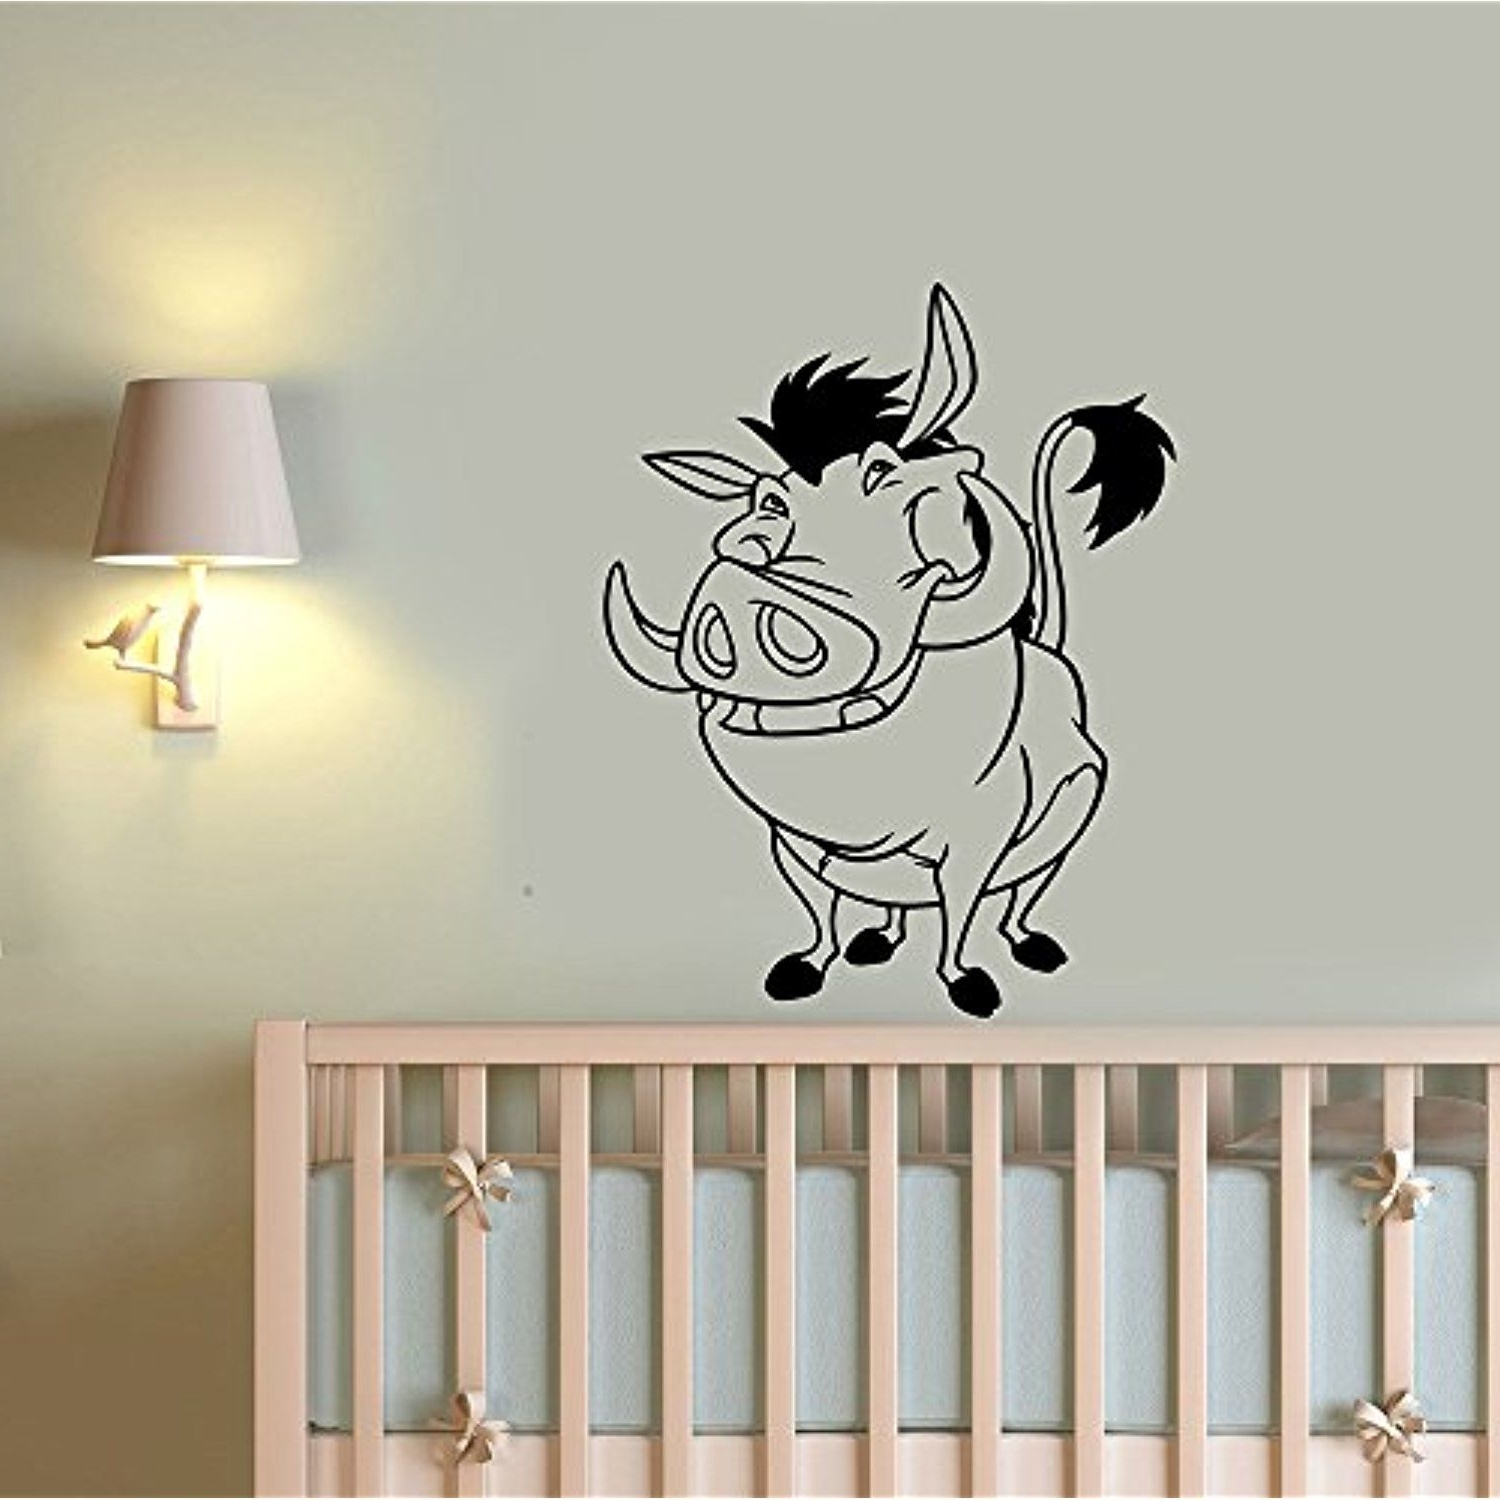 Preferred Lion King Wall Art Regarding Pumba Lion King Wall Art Decal Vinyl Sticker Housewares Disney (View 12 of 15)